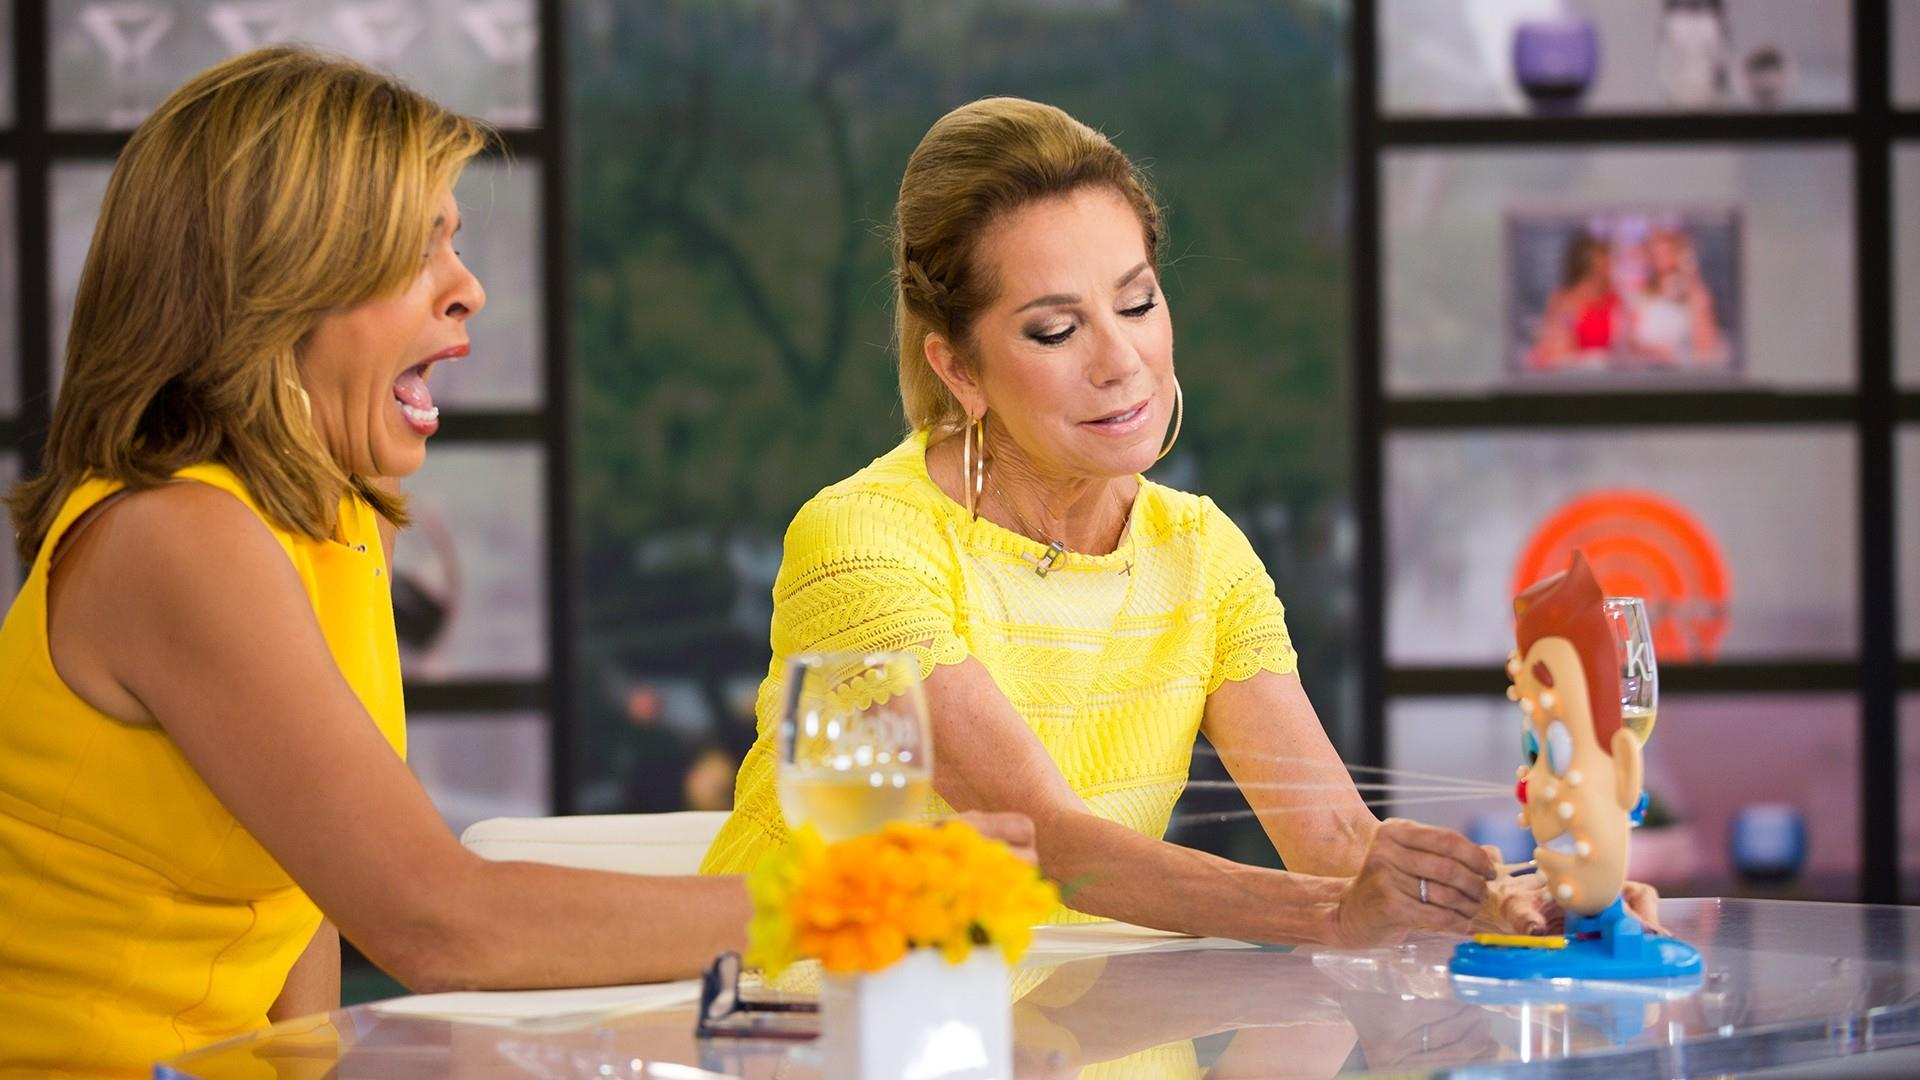 KLG and Hoda try out Dr  Pimple Popper's new game: Pimple Pete